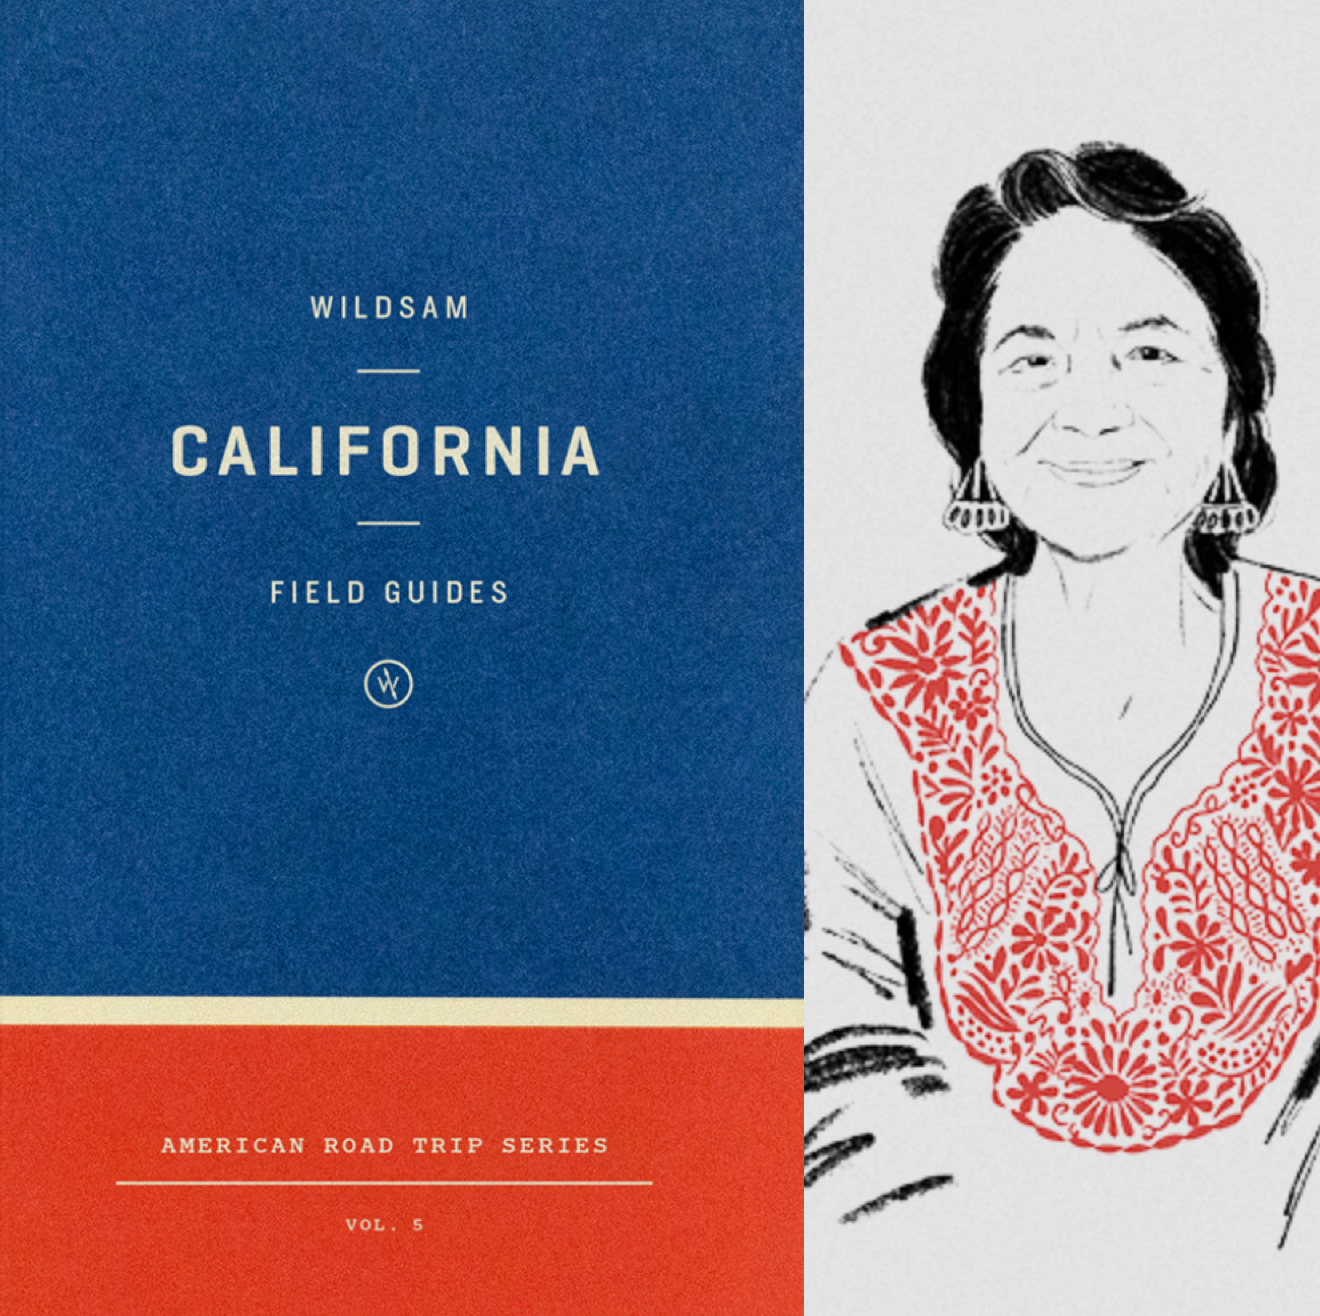 Cover of Wildsam: California Field Guide next to illustration of Dolores Huerta